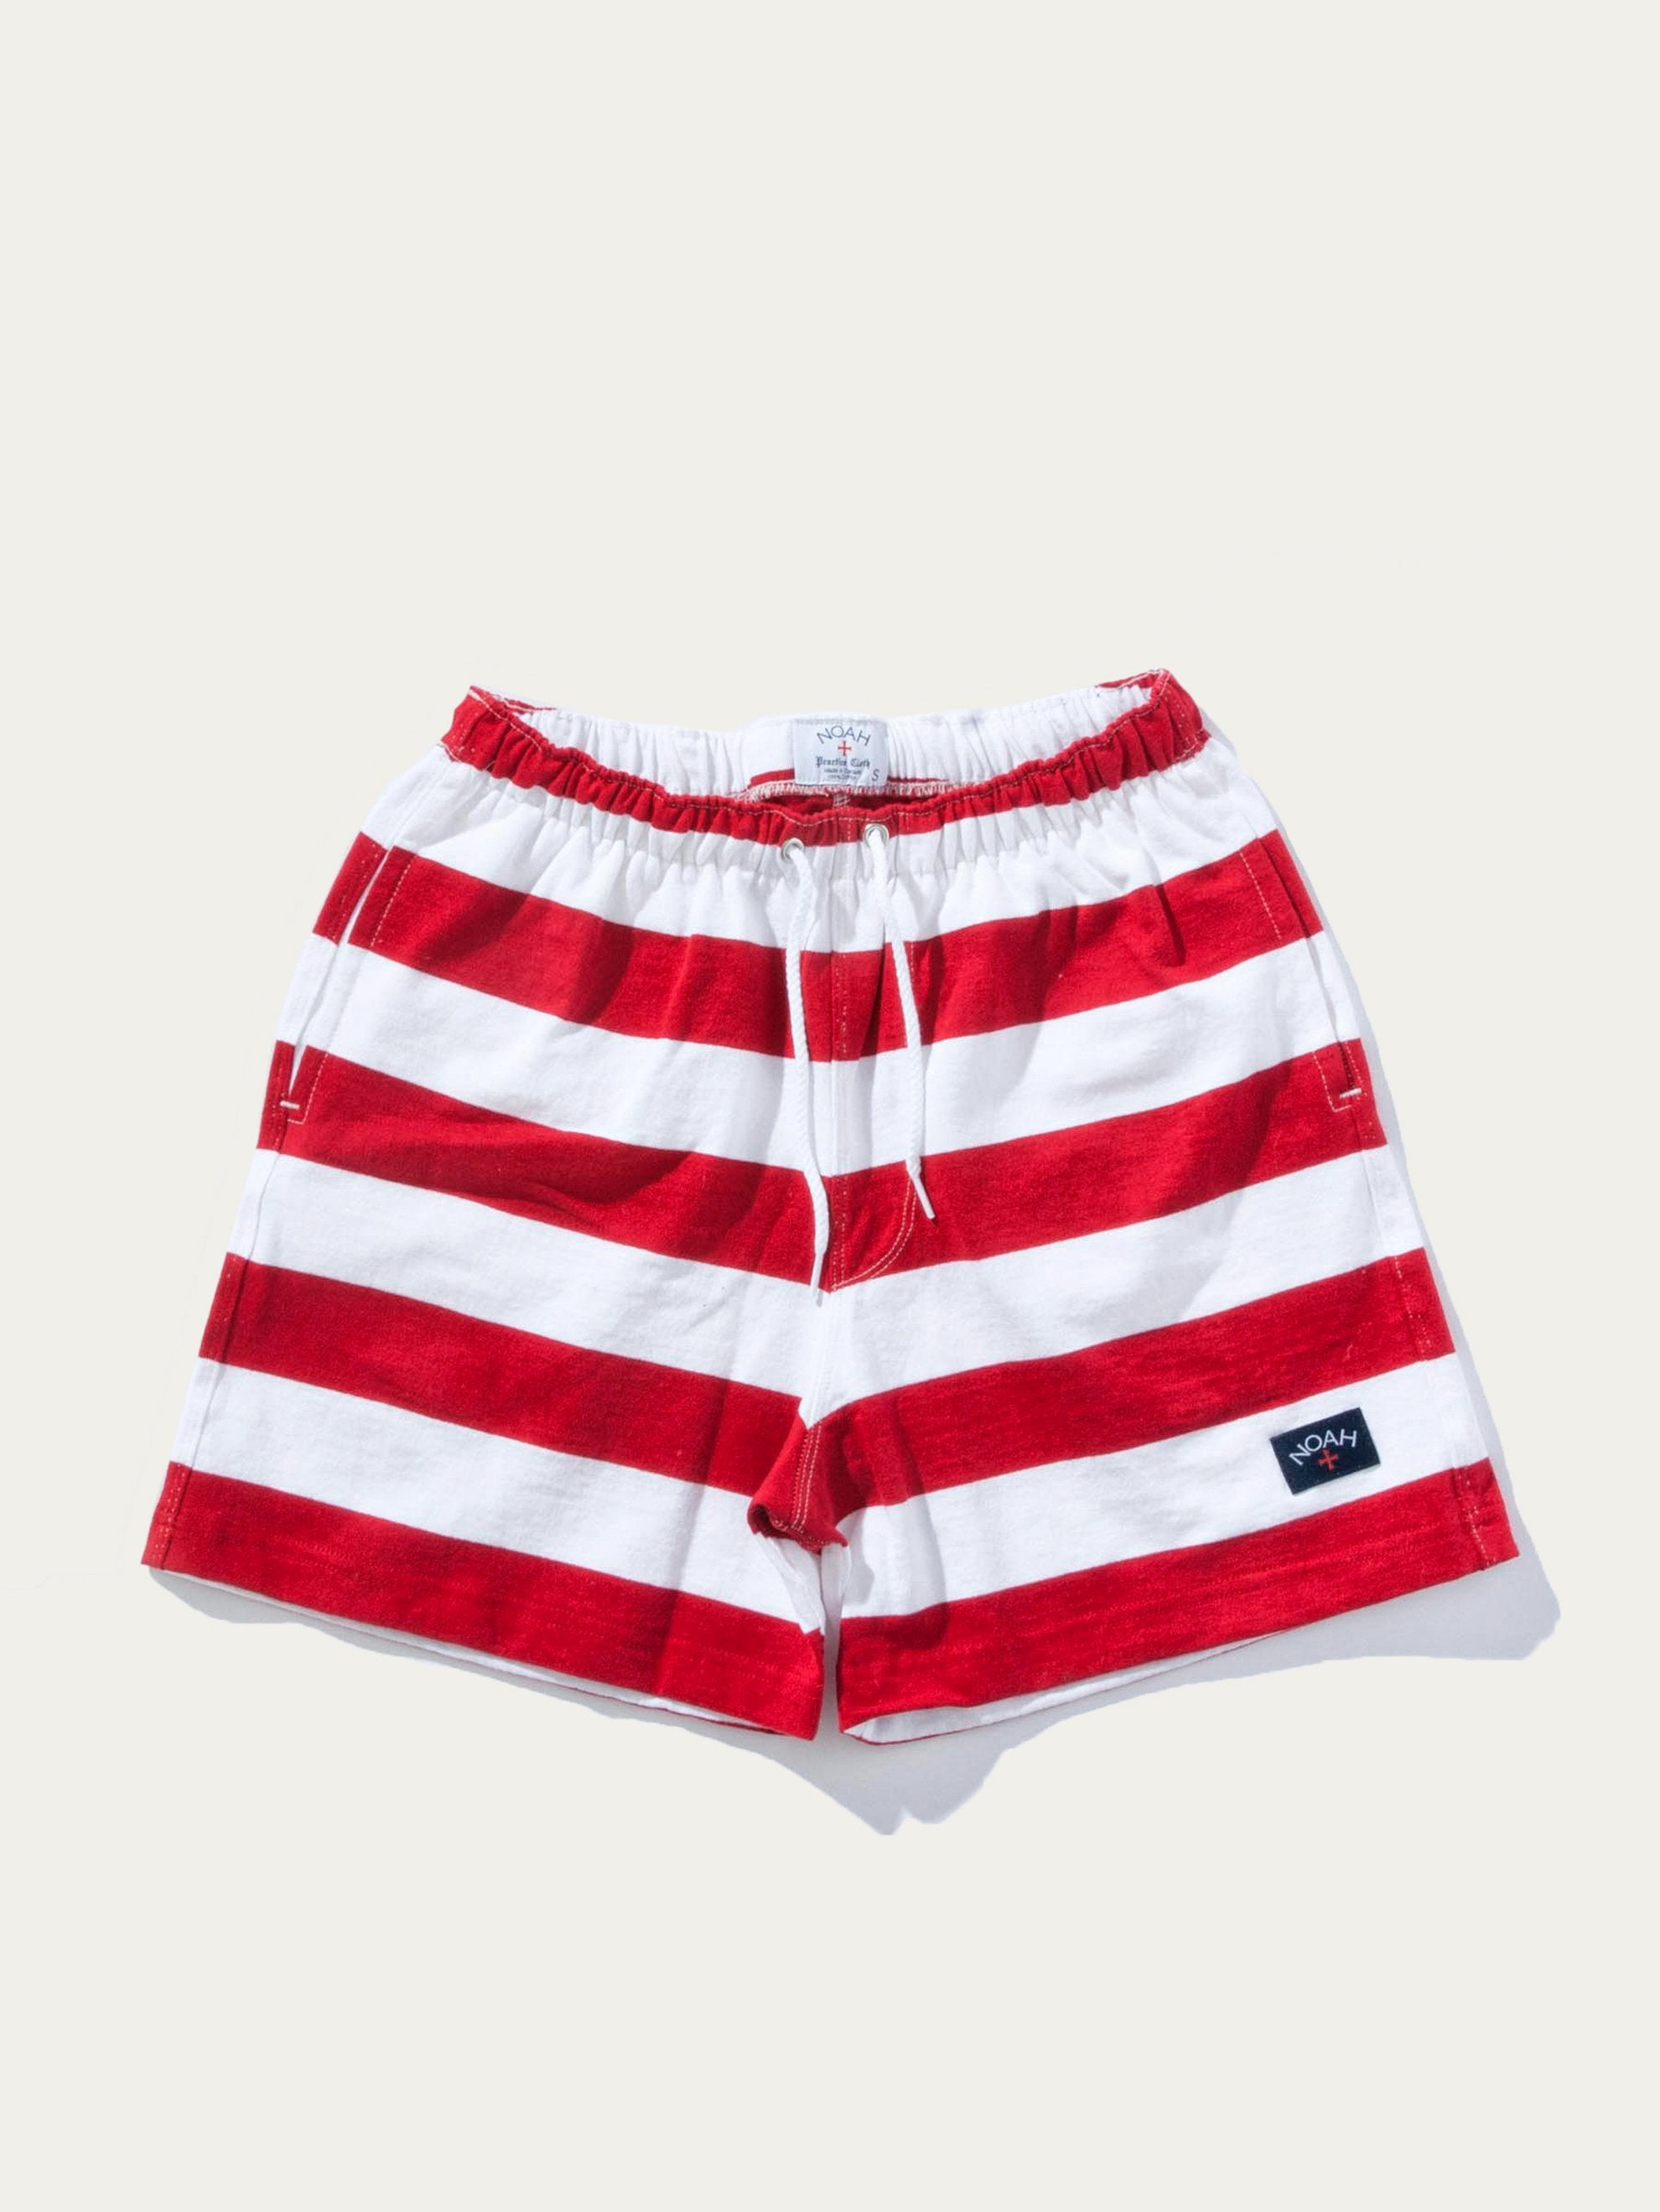 Dark Red/White Stripe Rugby Short 1